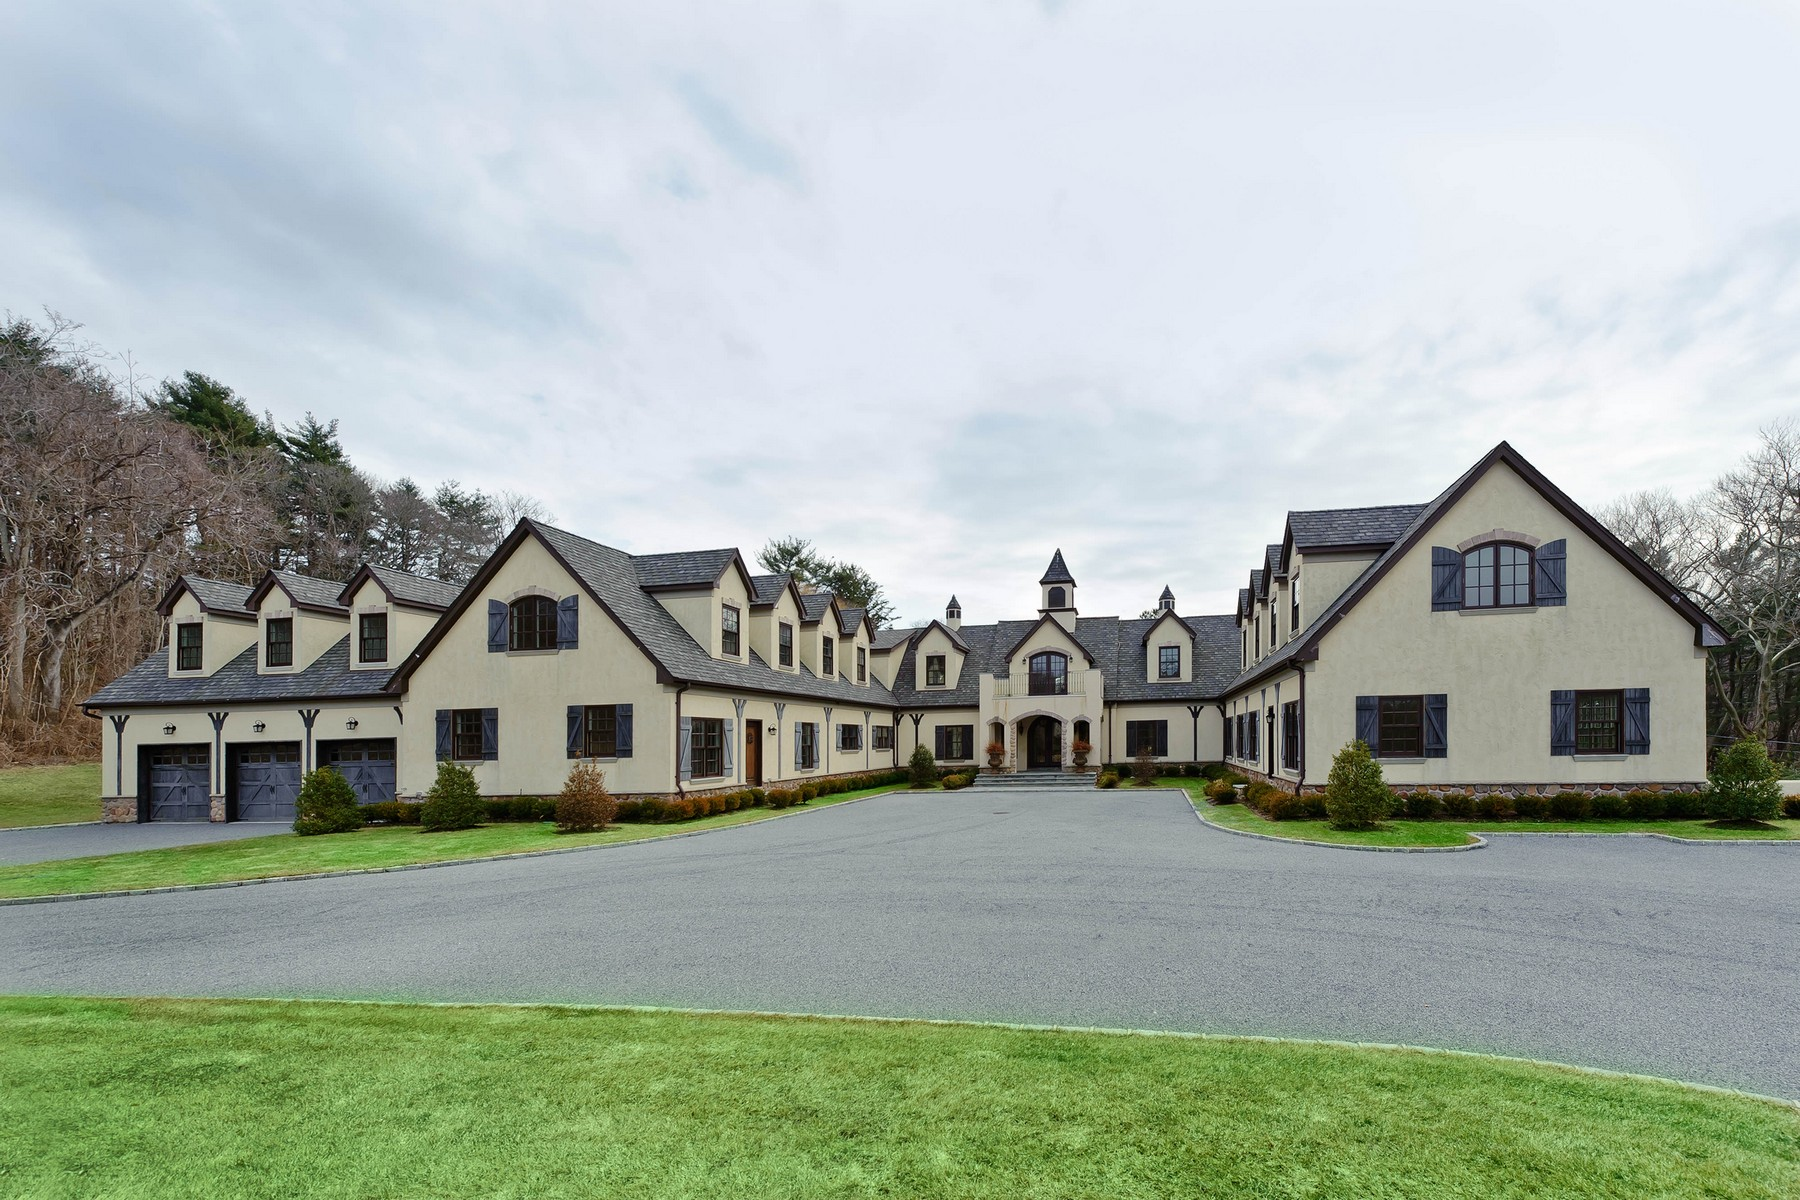 Single Family Home for Sale at Colonial 15 High Ridge Ln Matinecock, New York, 11560 United States